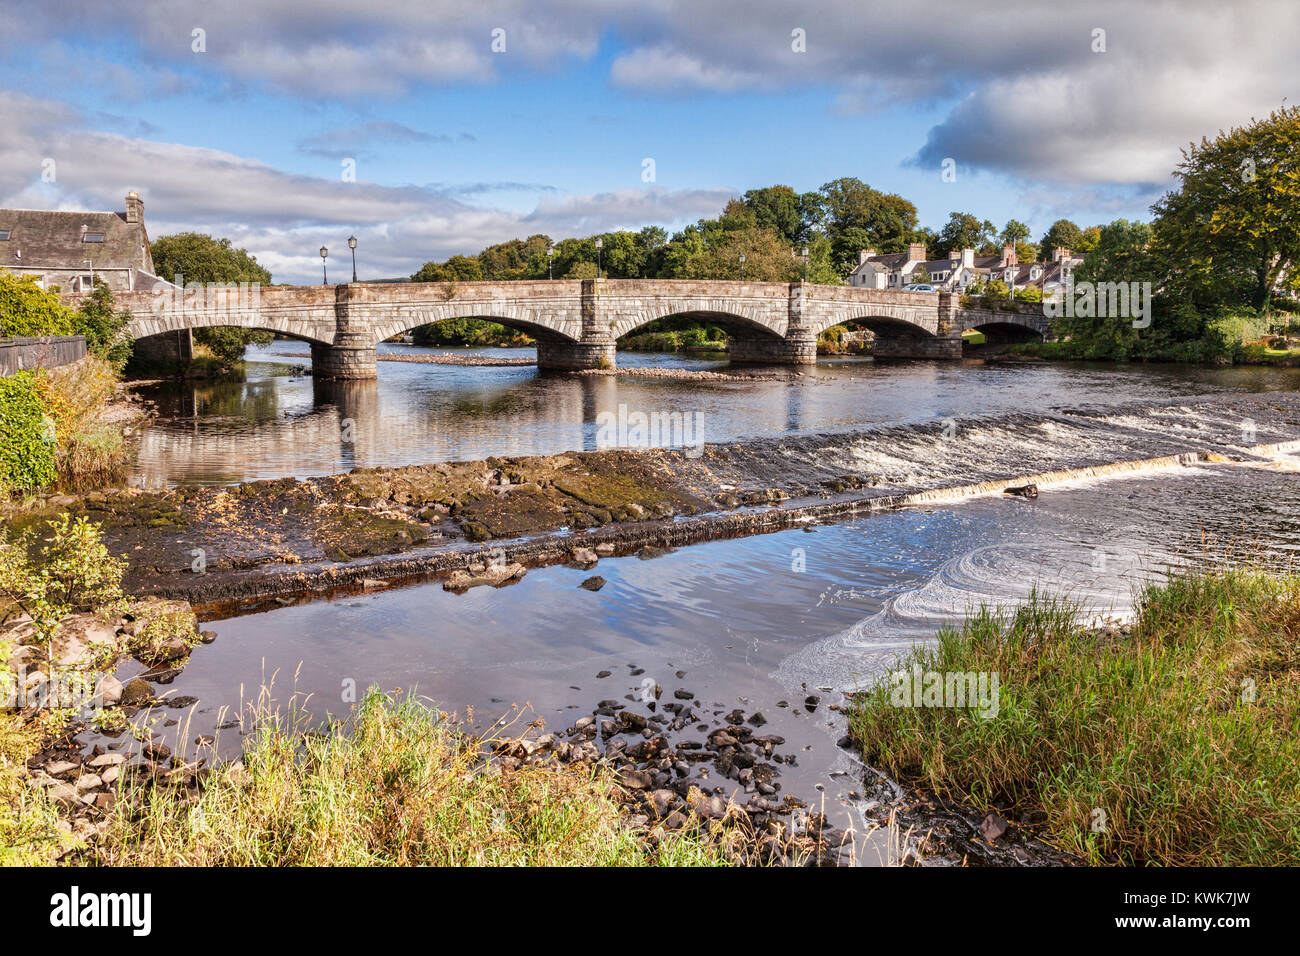 Bridge and weir on the River Cree at Newton Stuart, in The Machars region, Dumfries and Galloway, Scotland. - Stock Image